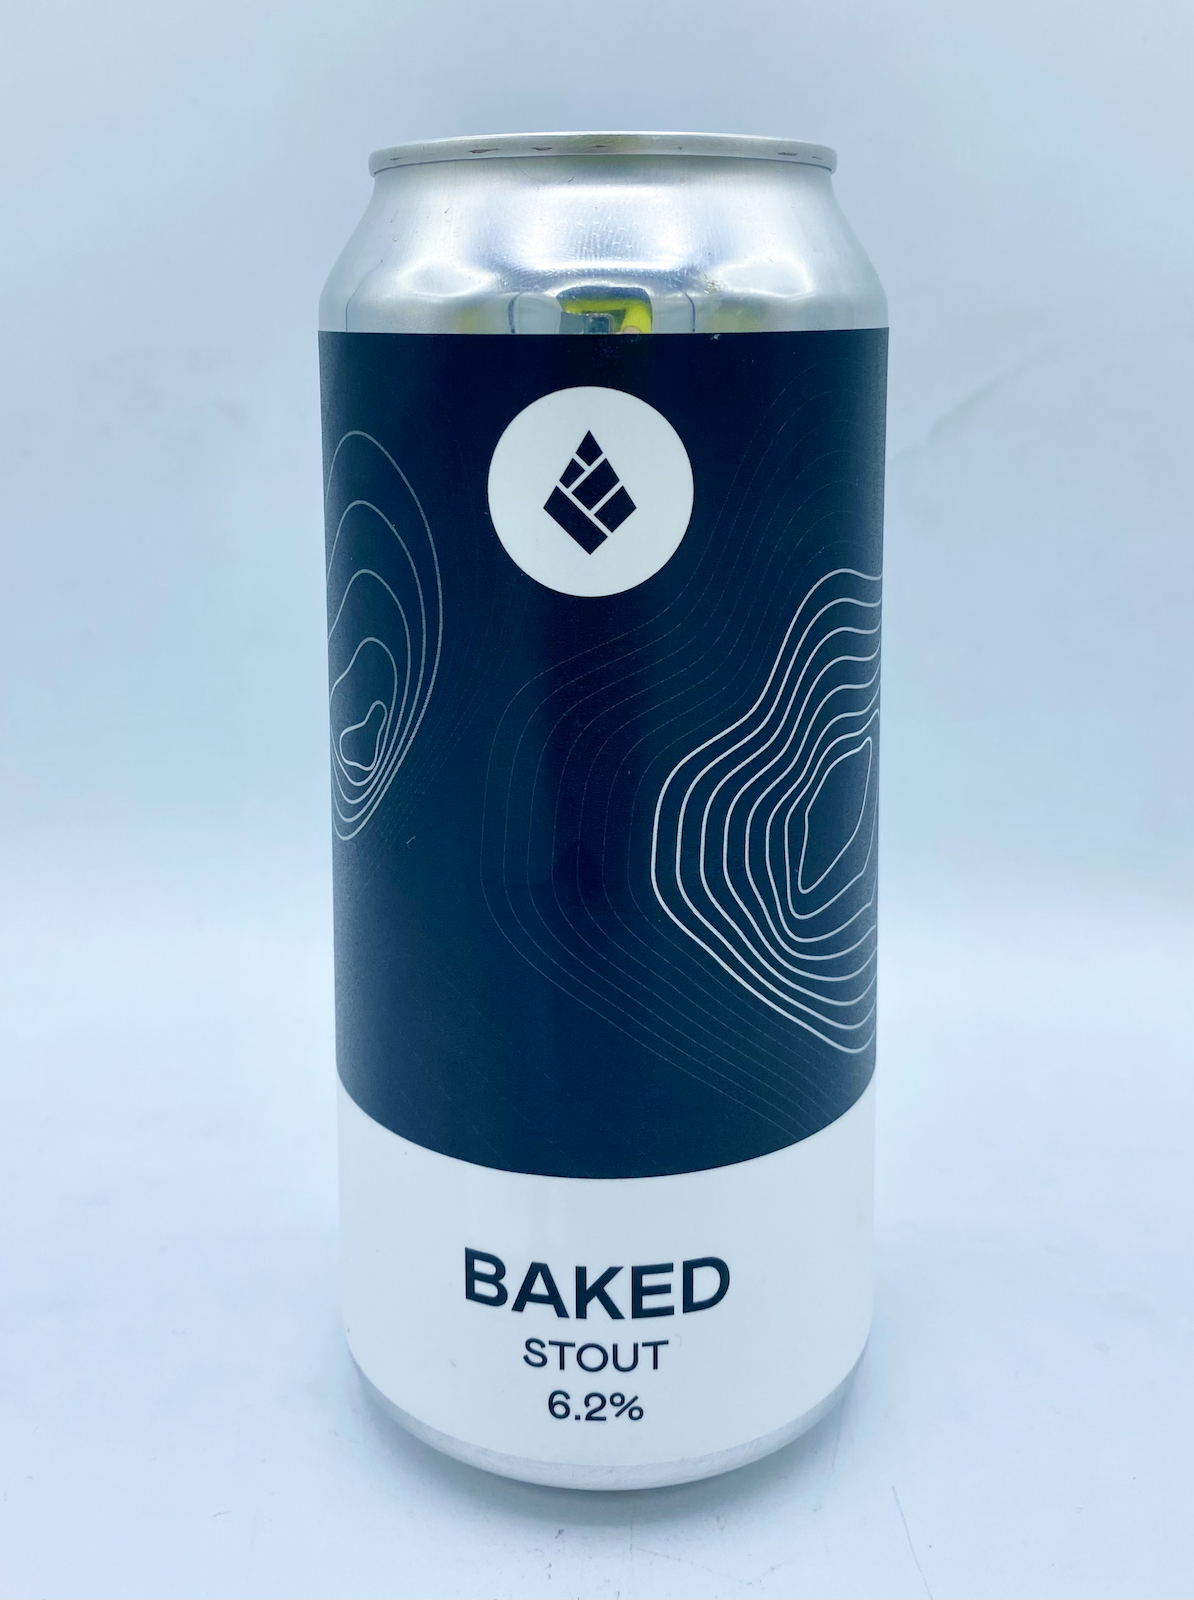 Drop Project - Baked 6.2%